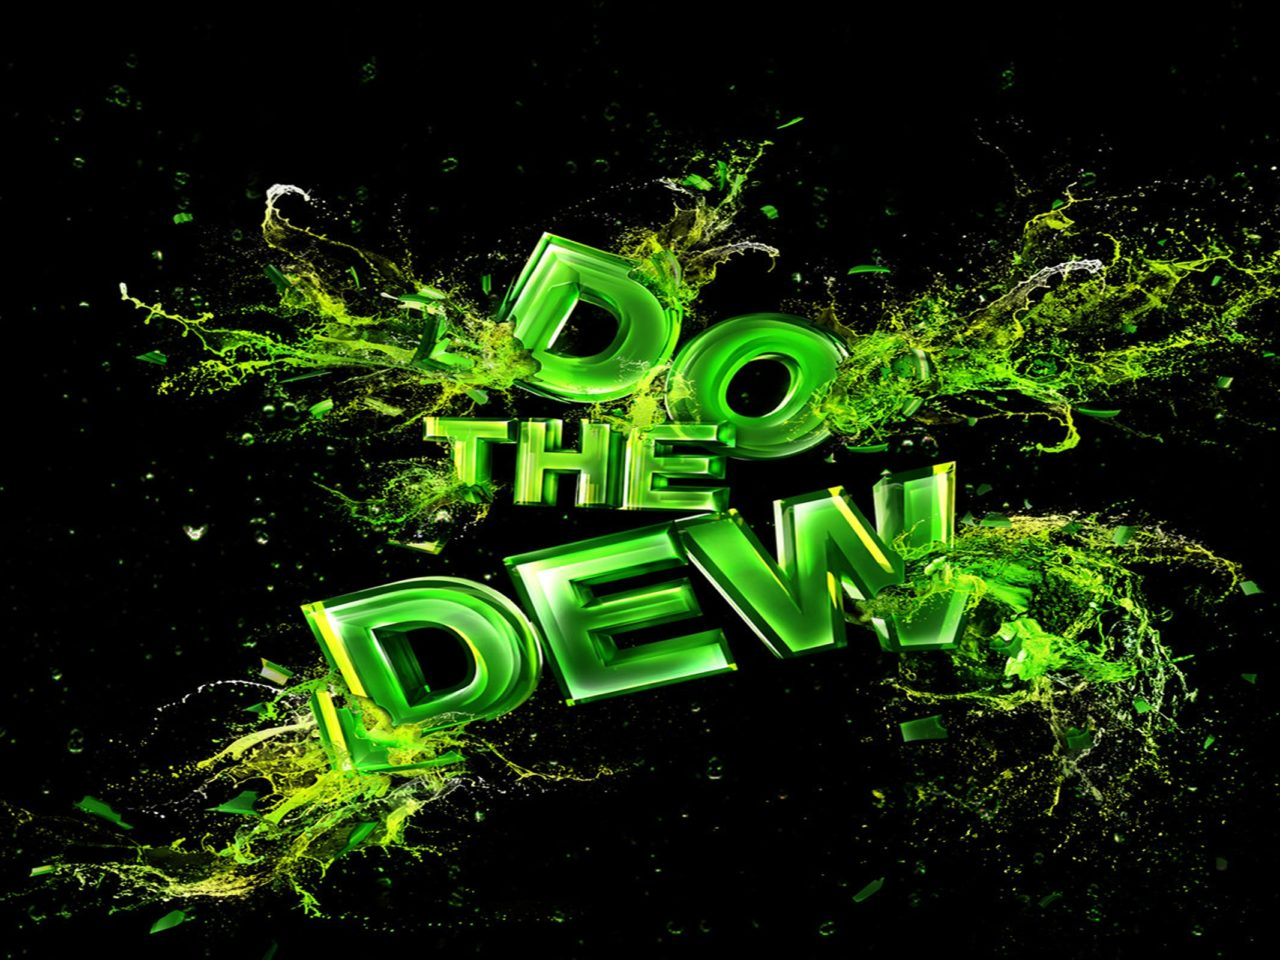 Car Wallpaper 1280x1024 Do The Dew By Chin 06547 Wallpapers13 Com